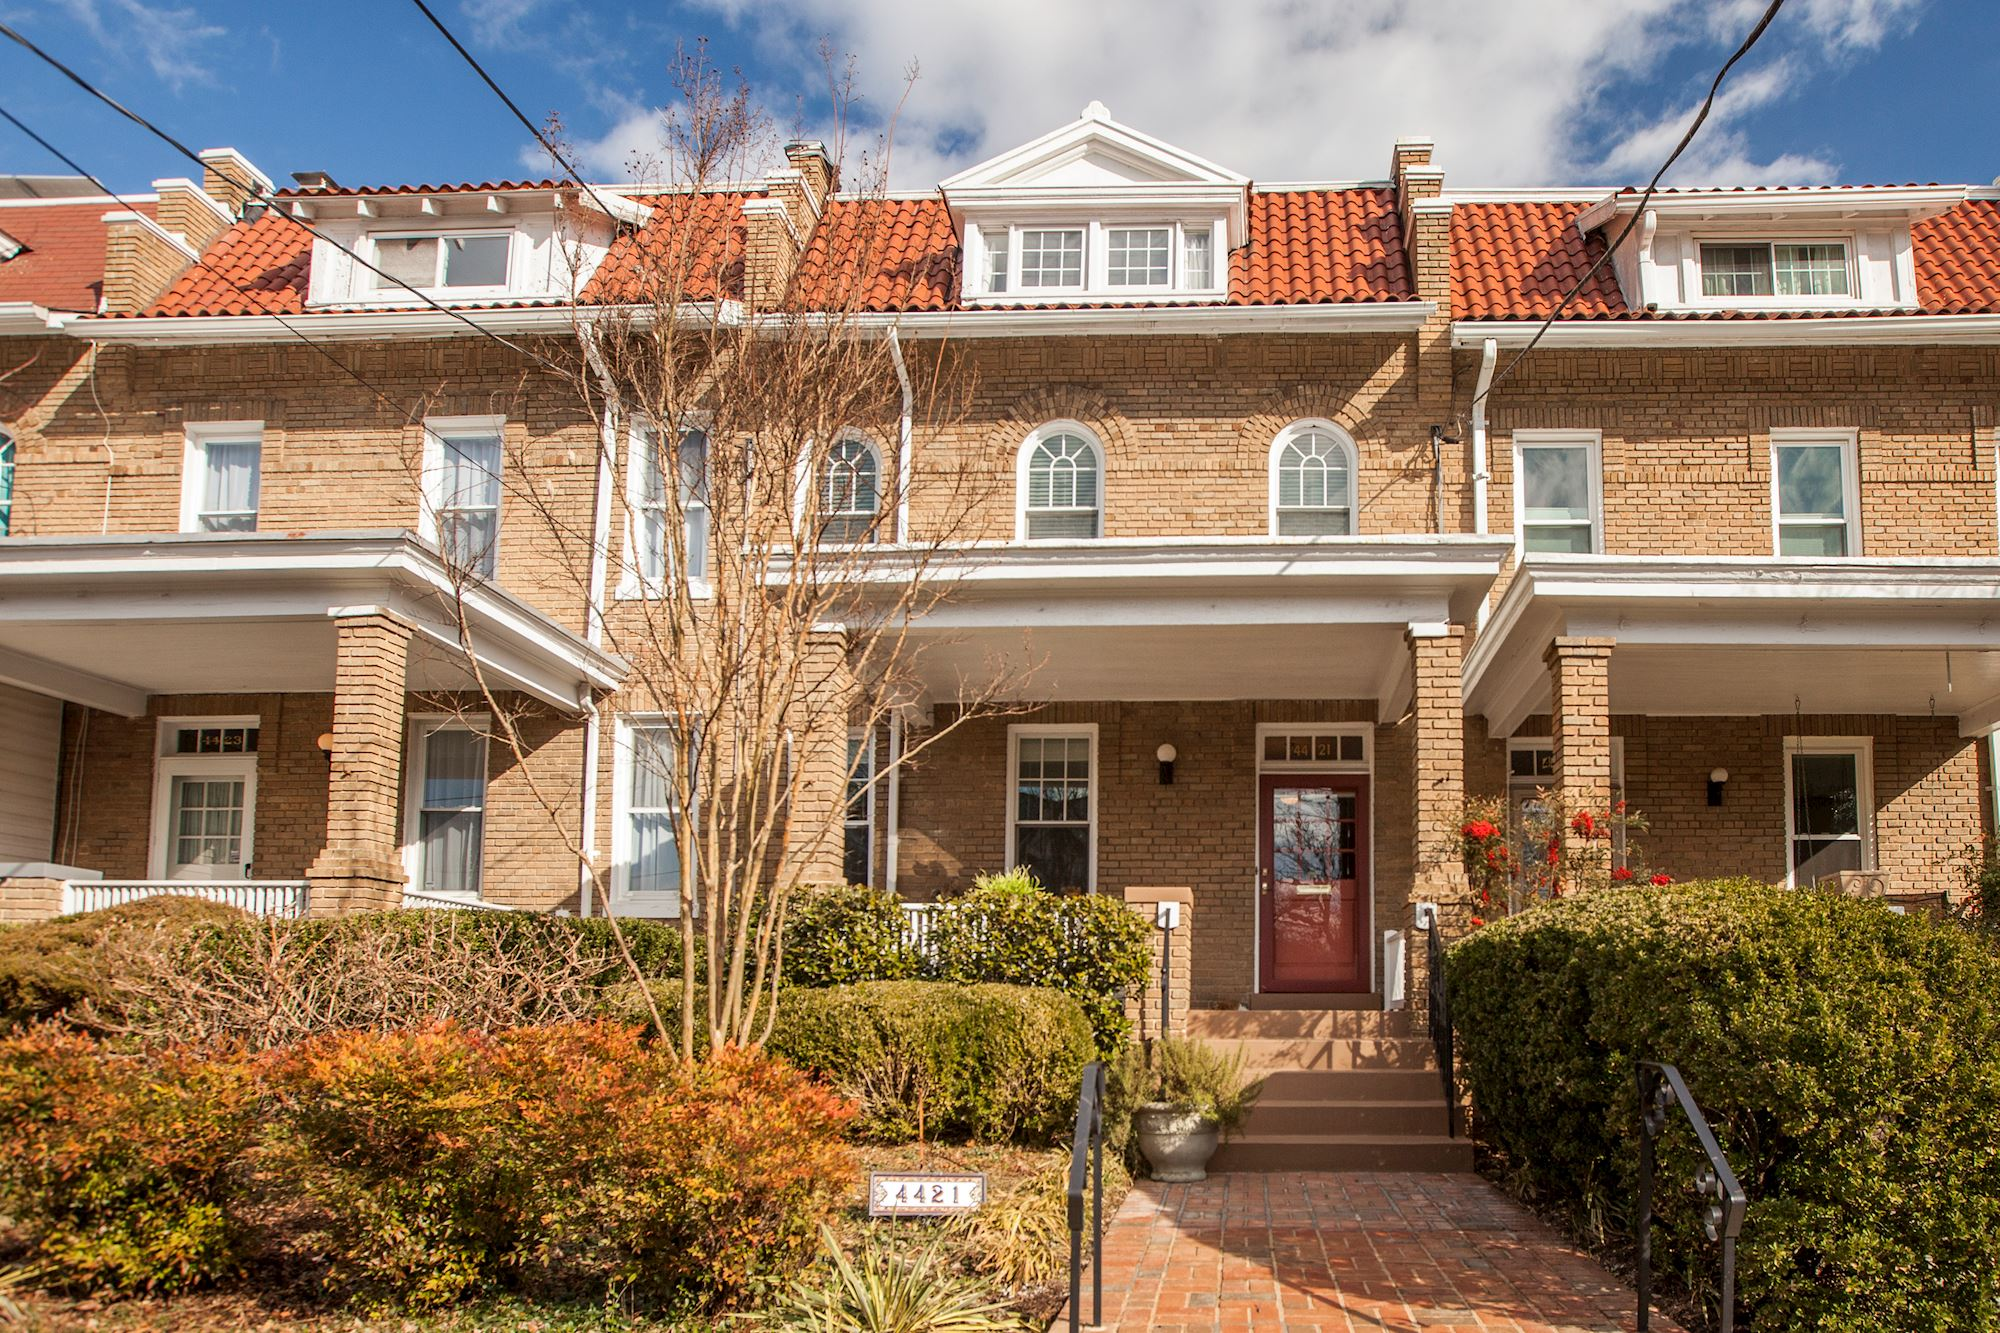 4421 17th Street, NW